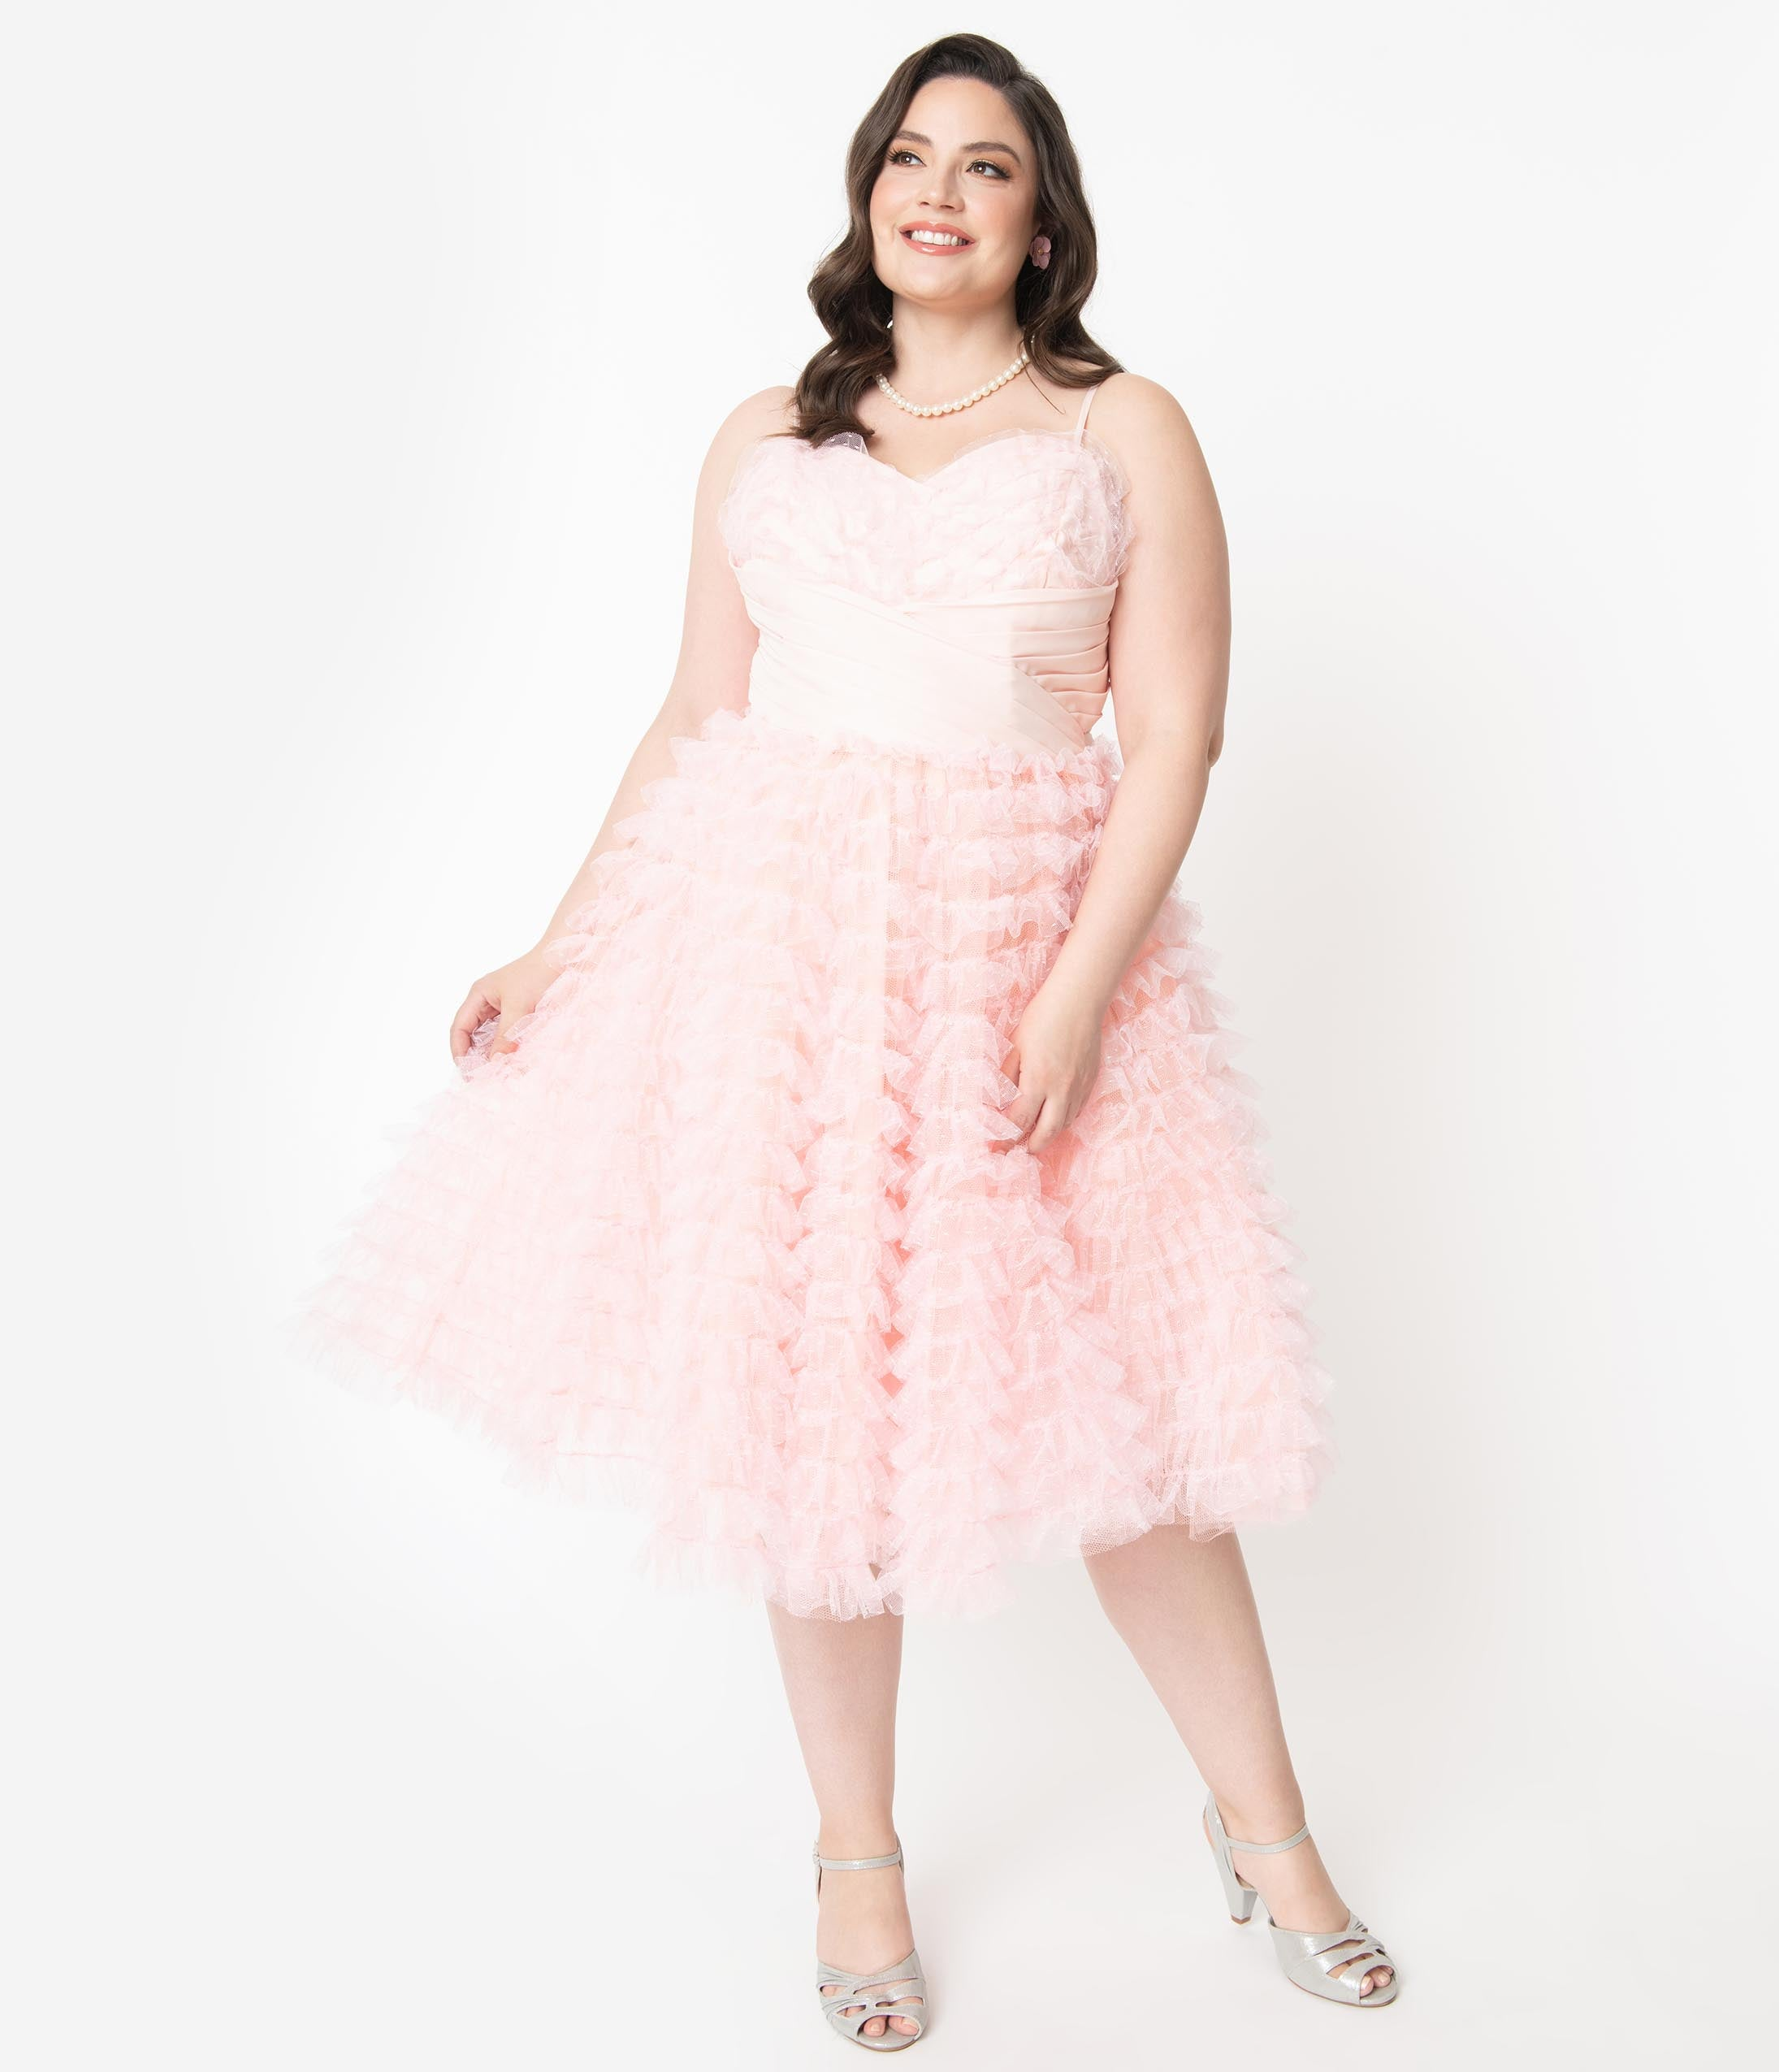 Vintage Evening Dresses and Formal Evening Gowns Unique Vintage Plus Size 1950S Pale Pink Ruffled Tulle Sweetheart Cupcake Swing Dress $110.00 AT vintagedancer.com